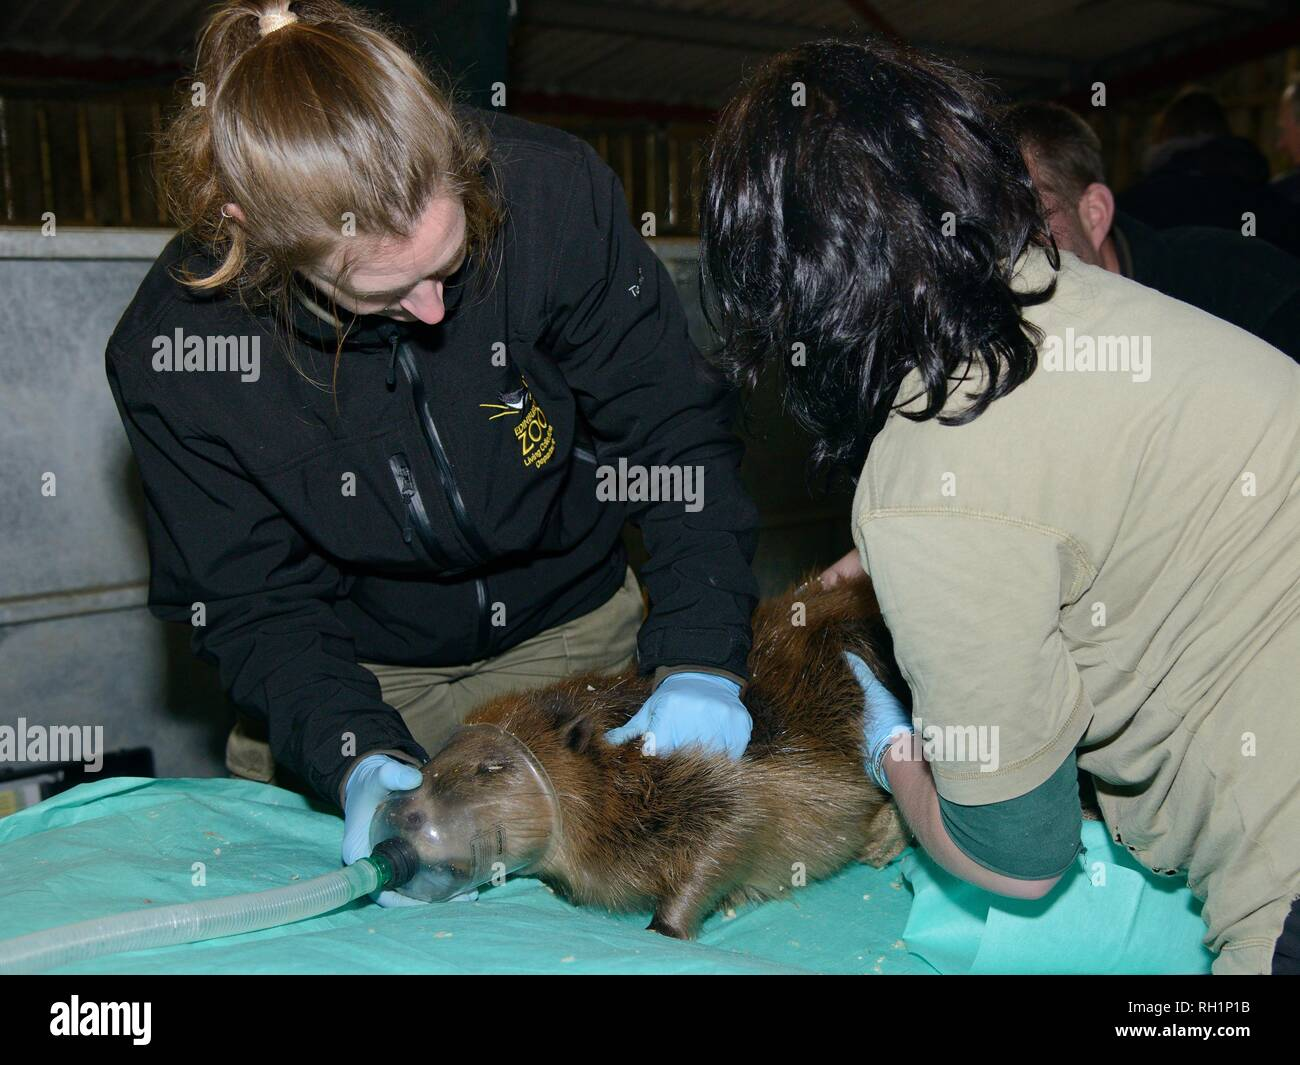 Eurasian beaver (Castor fiber) caught on the River Otter being anaesthetised by a vet ahead of health checks and re-release, Devon, UK, March 2015. - Stock Image